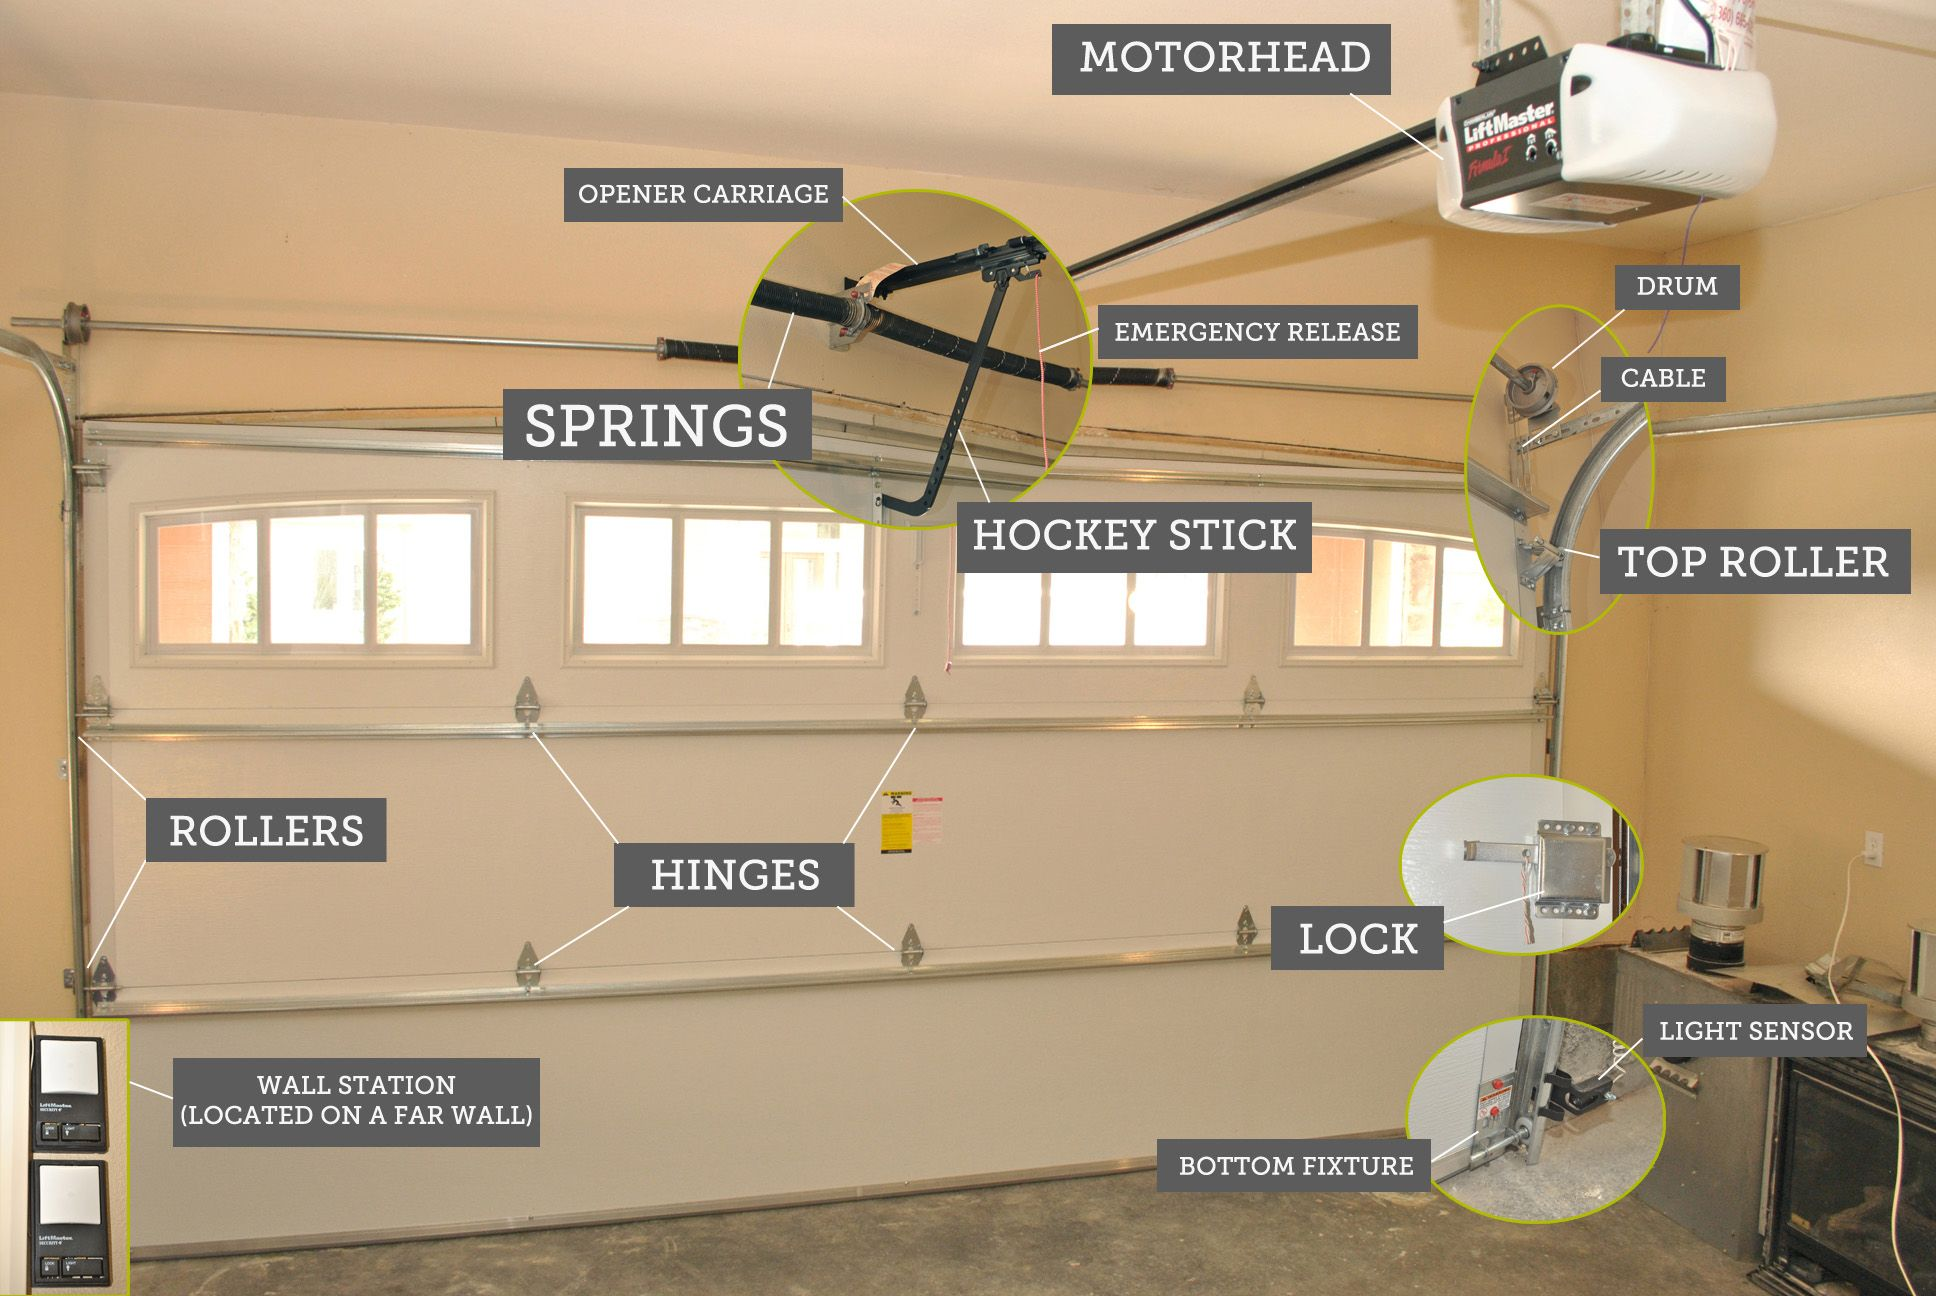 Repair tulsa ok tulsa garage door repair service broken springs - Are You Suffering With Any Of The Component With Your Garage Door Then Hire An